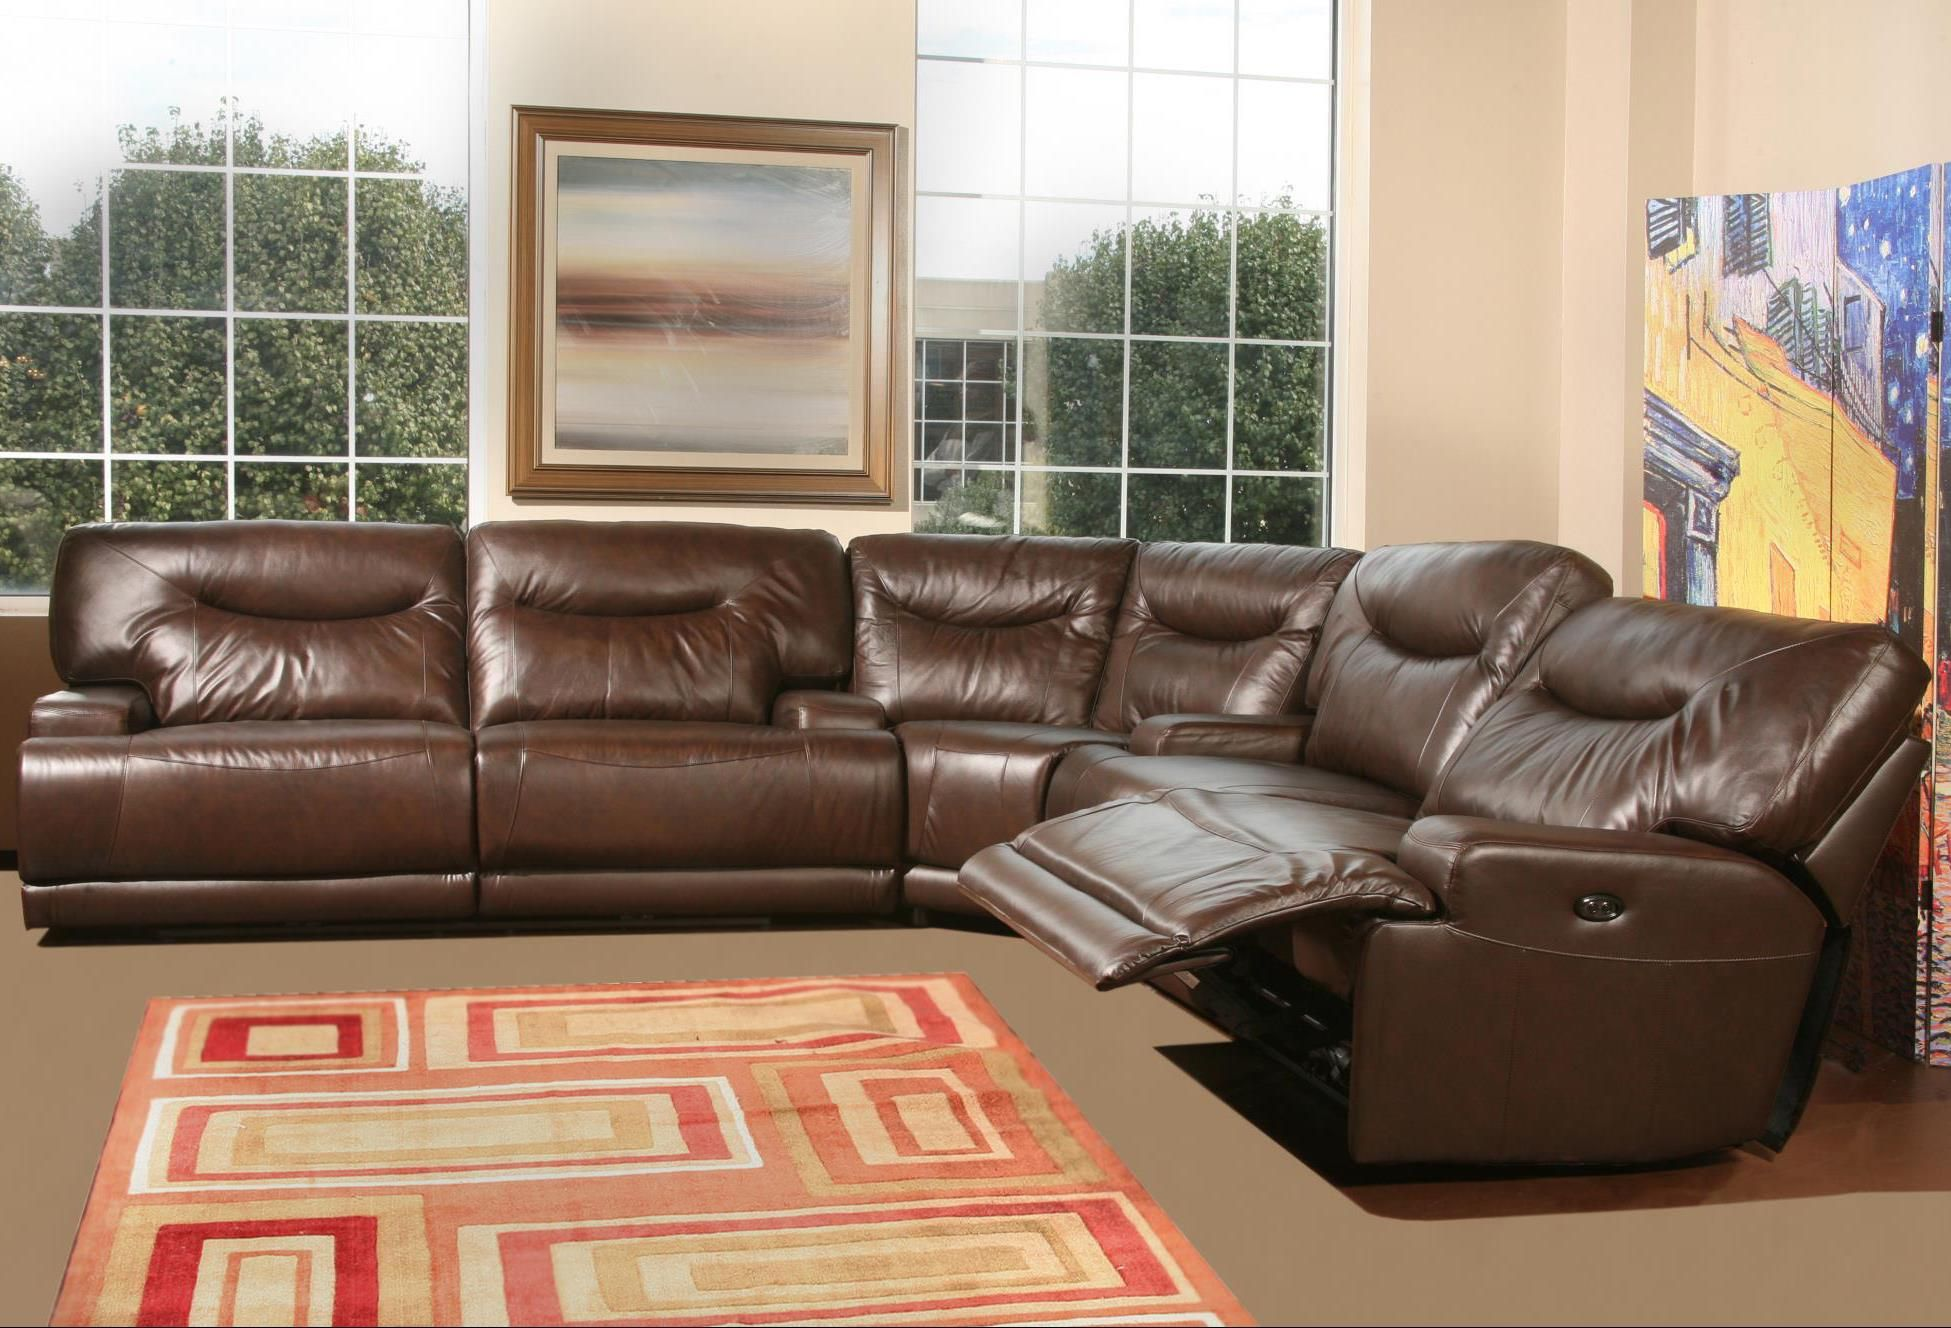 Tremendous Teddy Power Reclining Sectional With Interior Arms By Amalfi Dailytribune Chair Design For Home Dailytribuneorg